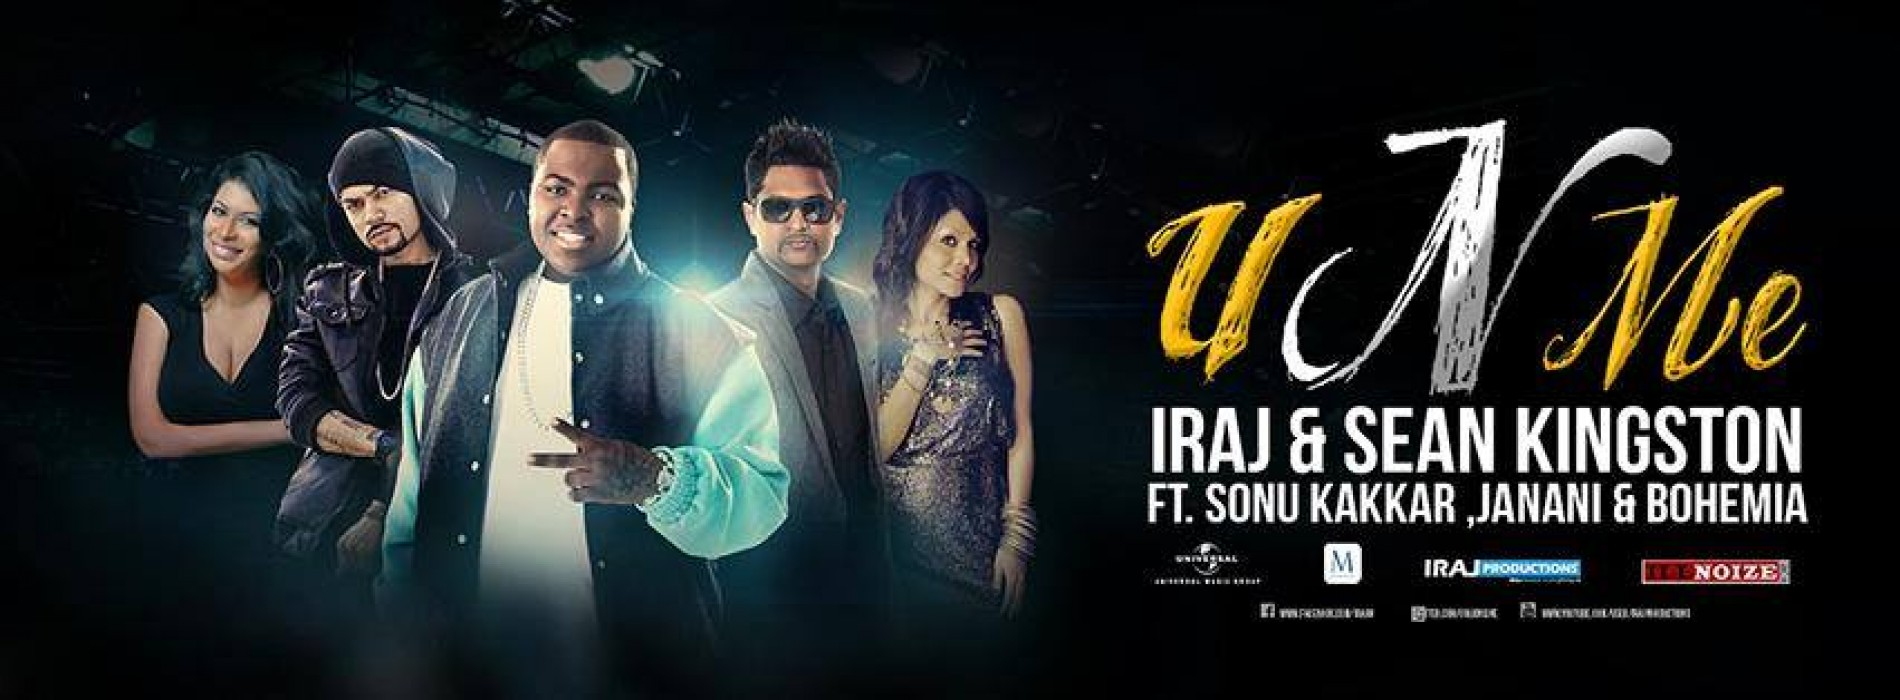 Iraj & Sean Kingston Ft. Sonu Kakkar , Janani & Bohemia – U n Me